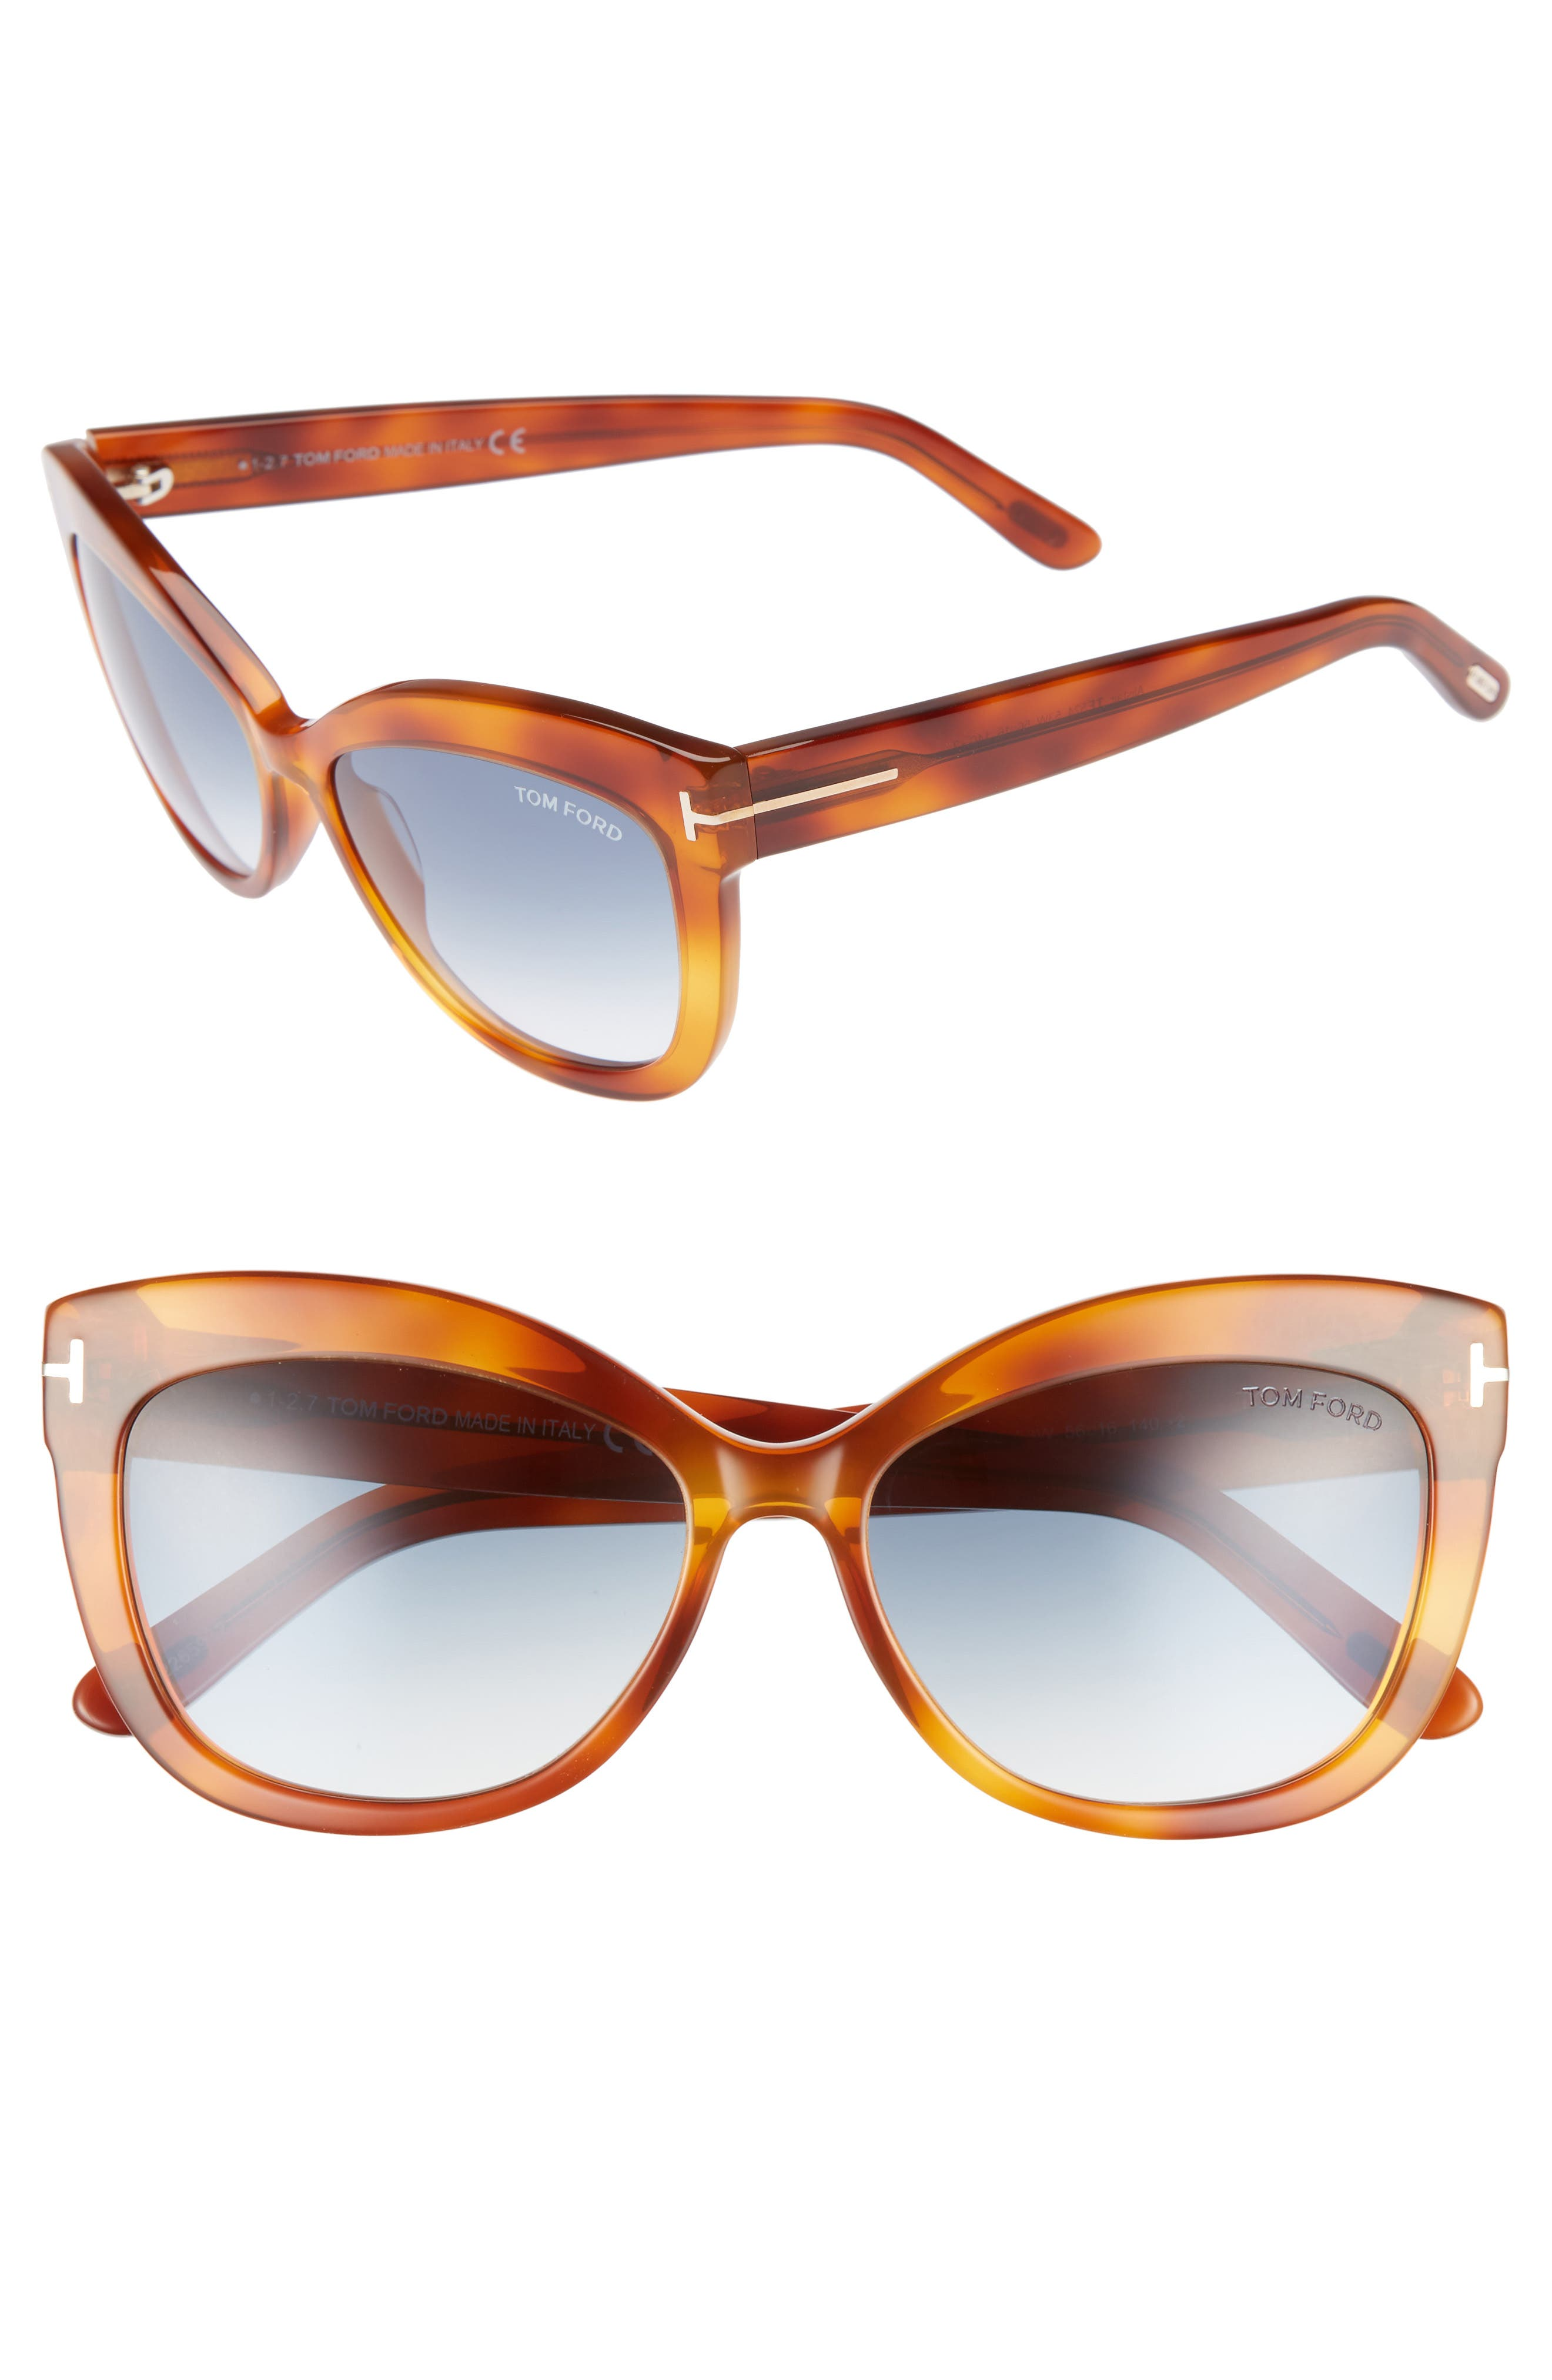 Tom Ford Alistair 56mm Gradient Sunglasses